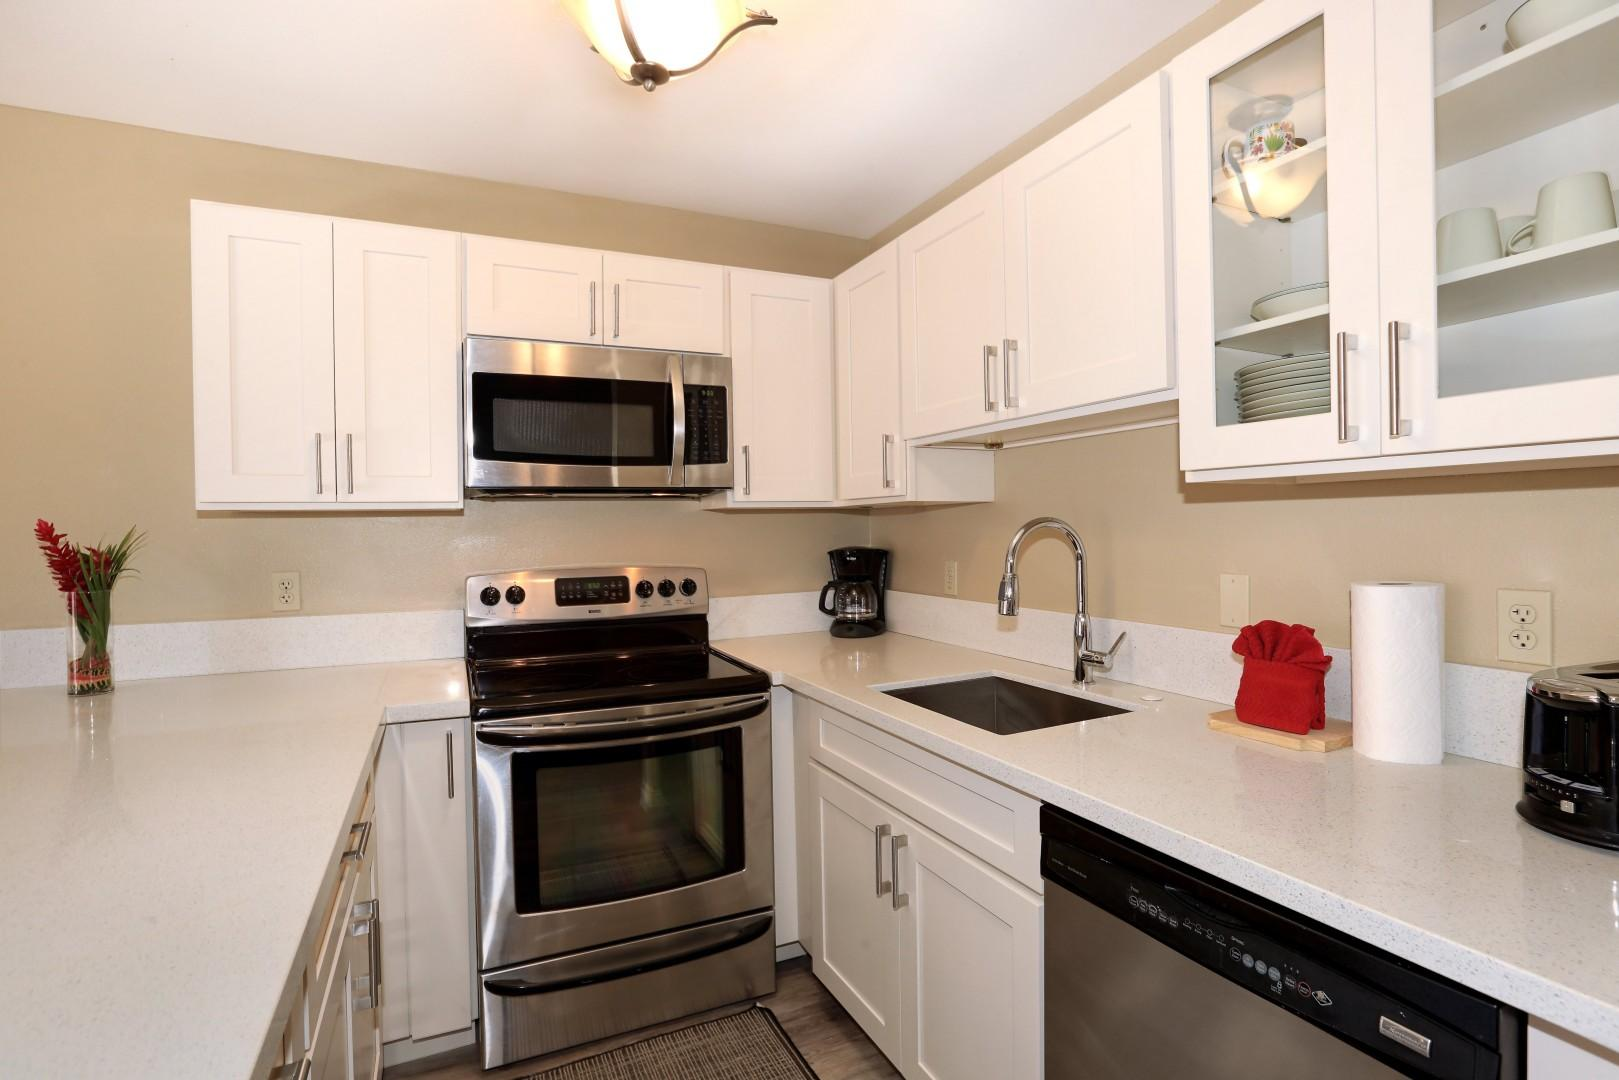 Full kitchen amenities including stainless steal range, microwave, dishwasher and refridgerator -min